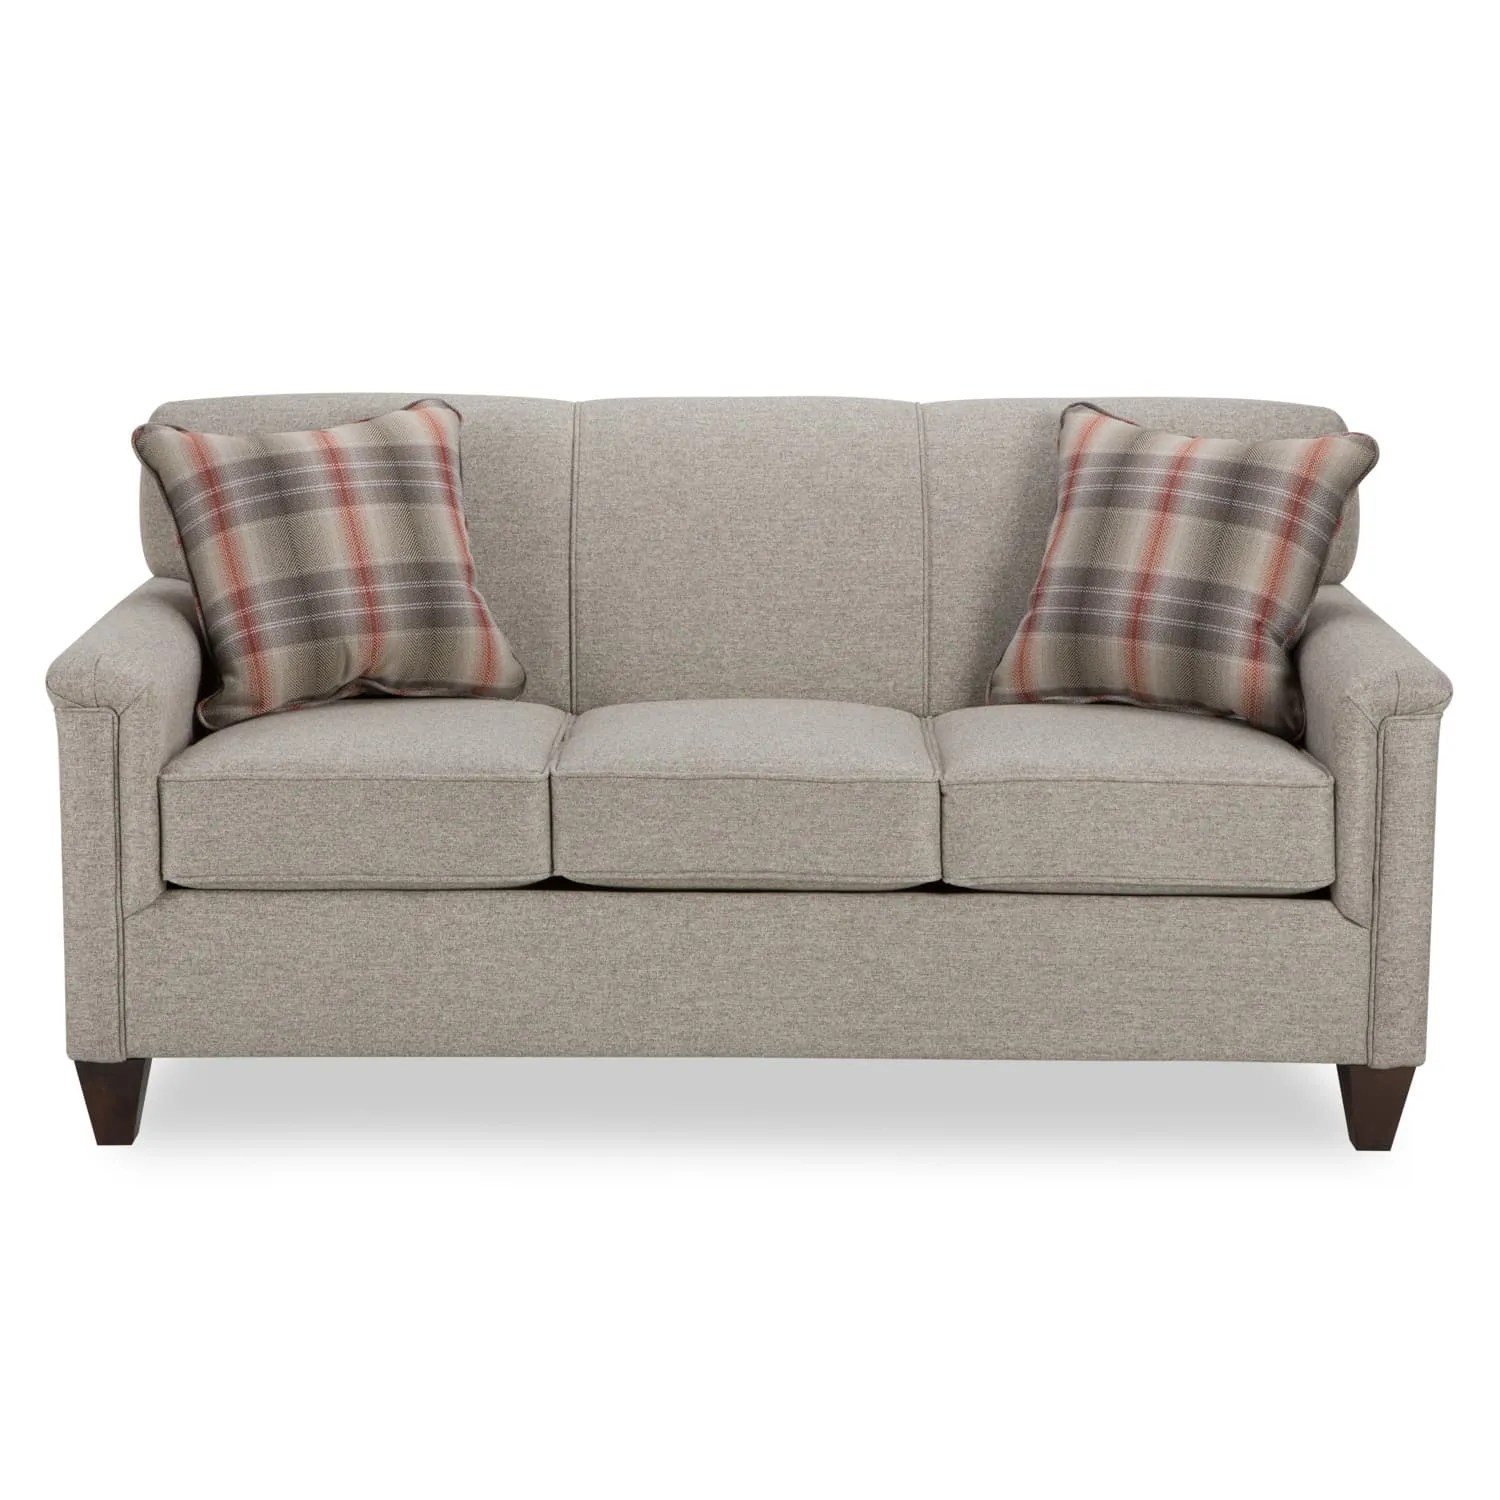 living room furniture sales grey tile flooring sofas from wg r in wisconsin